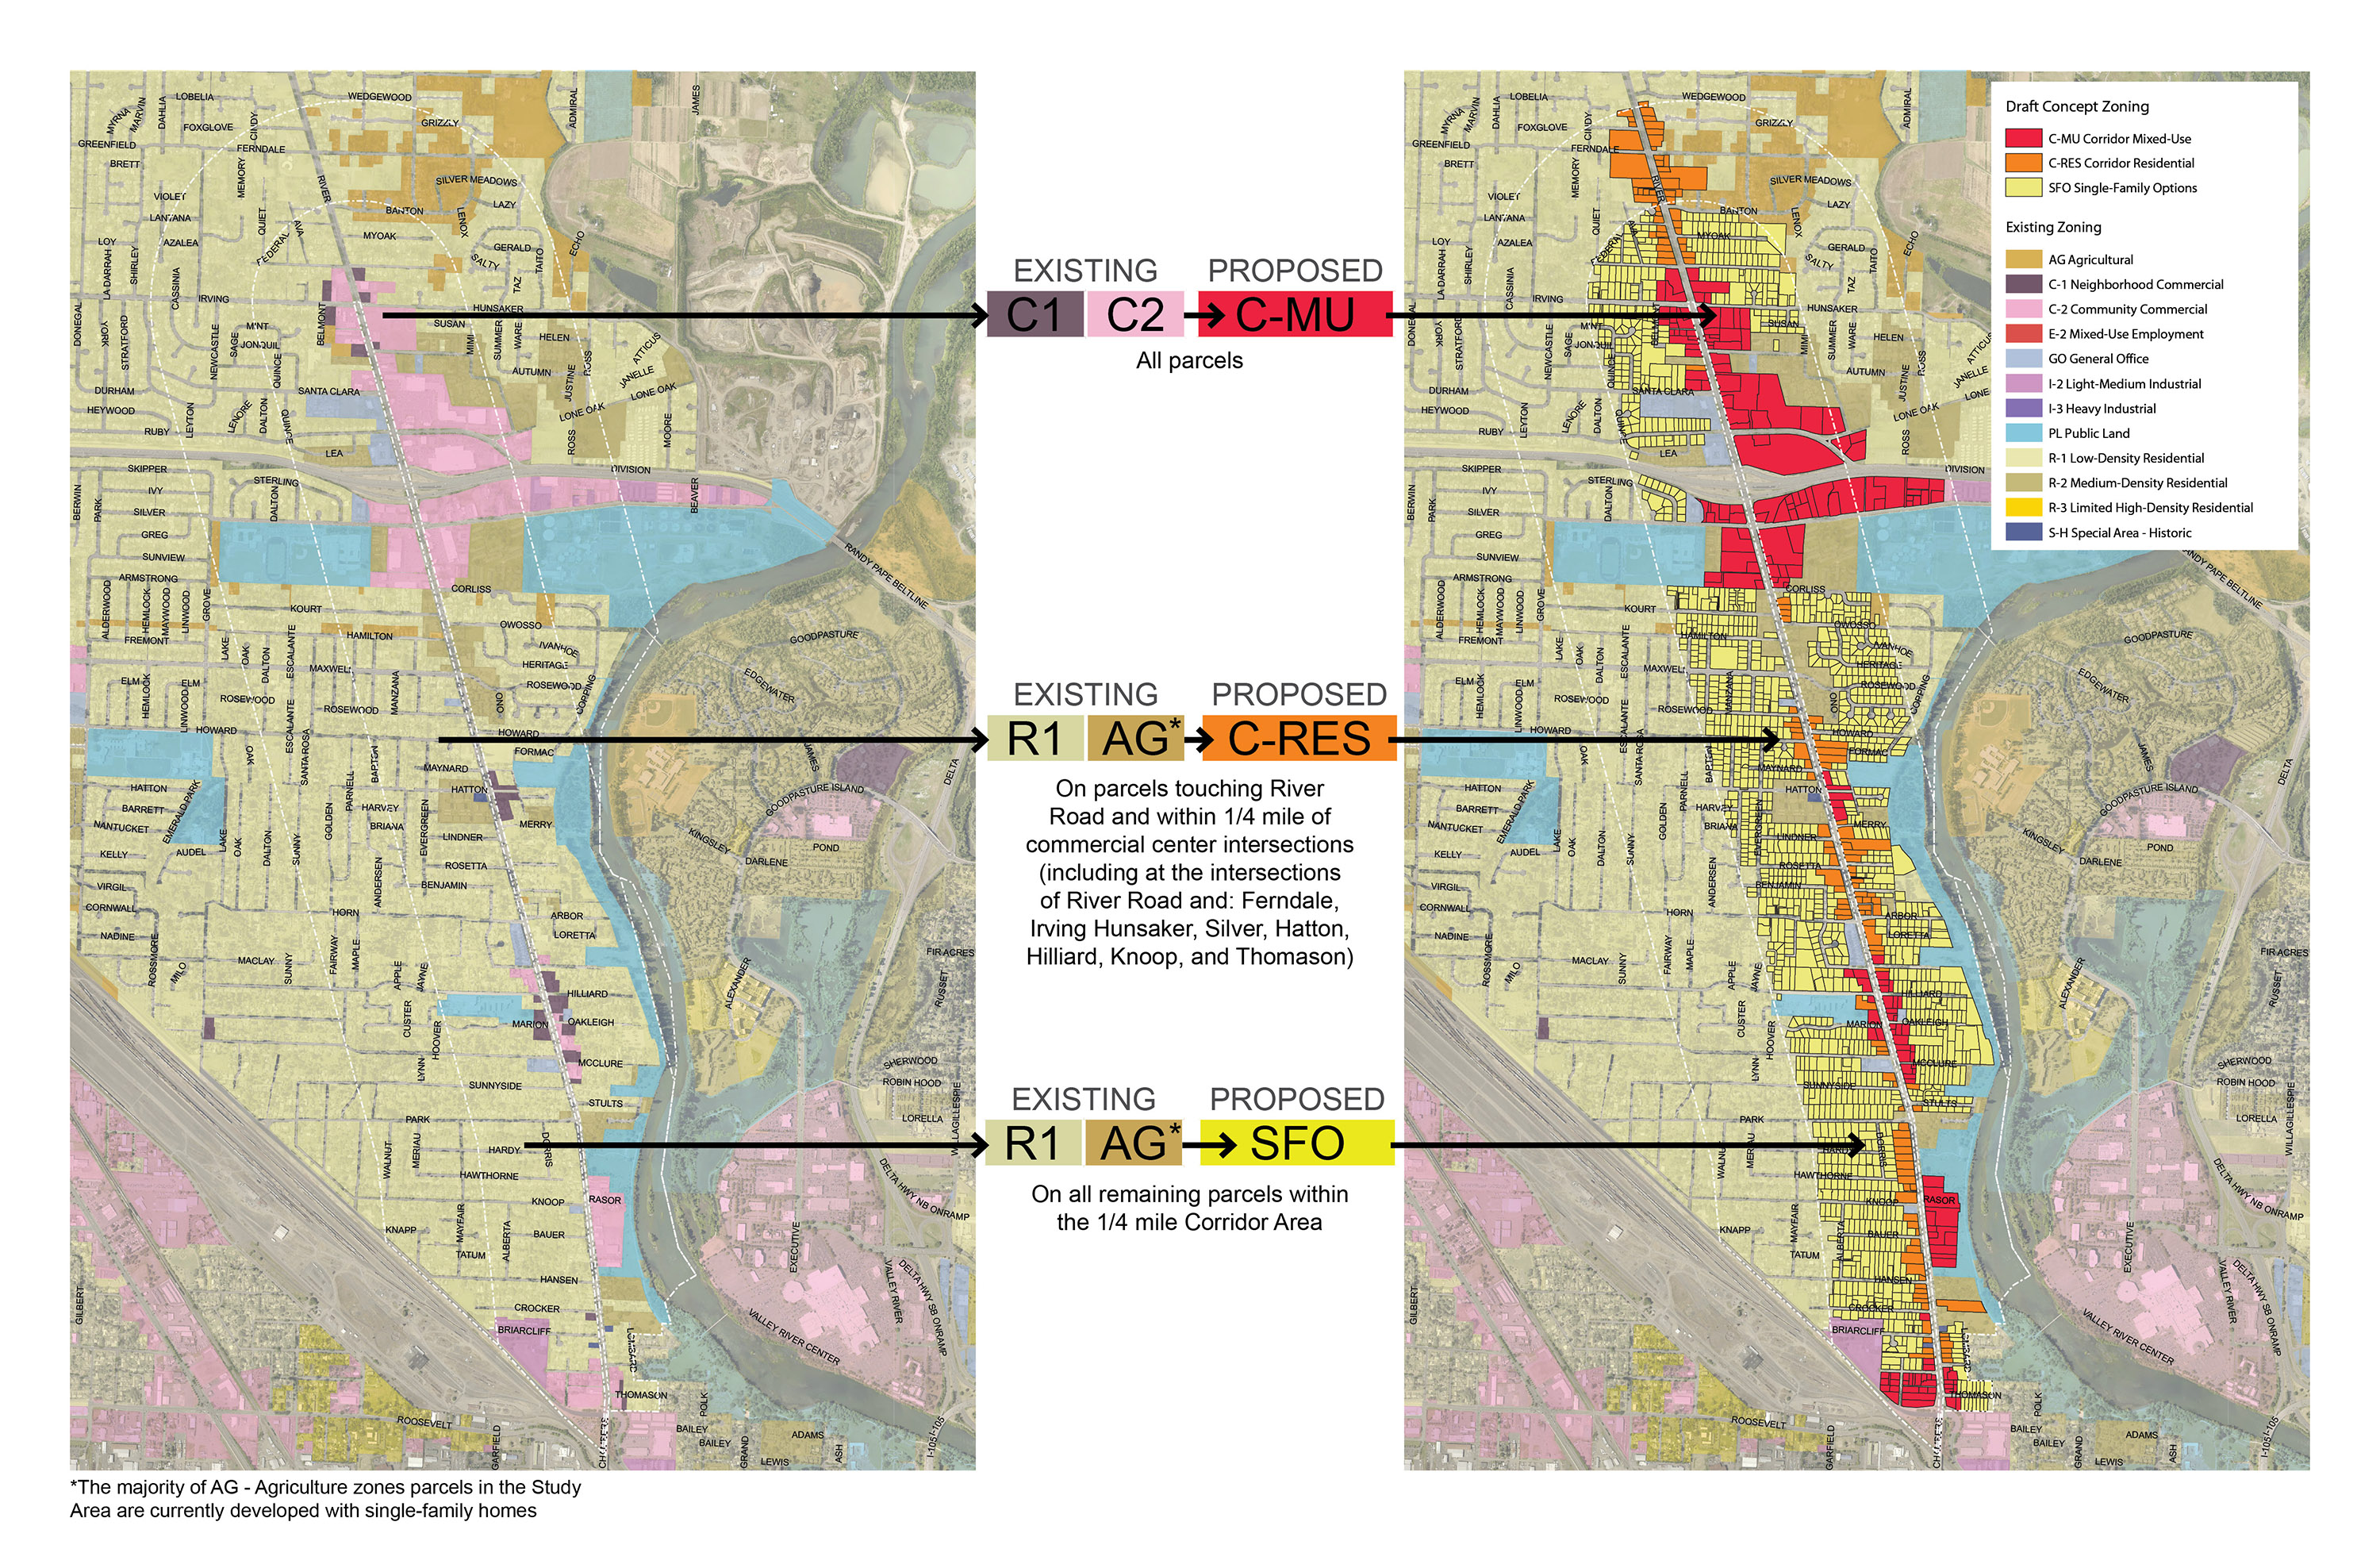 """<span style=""""color: #36545f;""""><strong>How Zones Switch Between Current Zoning and Concept 2 Proposed Zoning</strong></span>"""